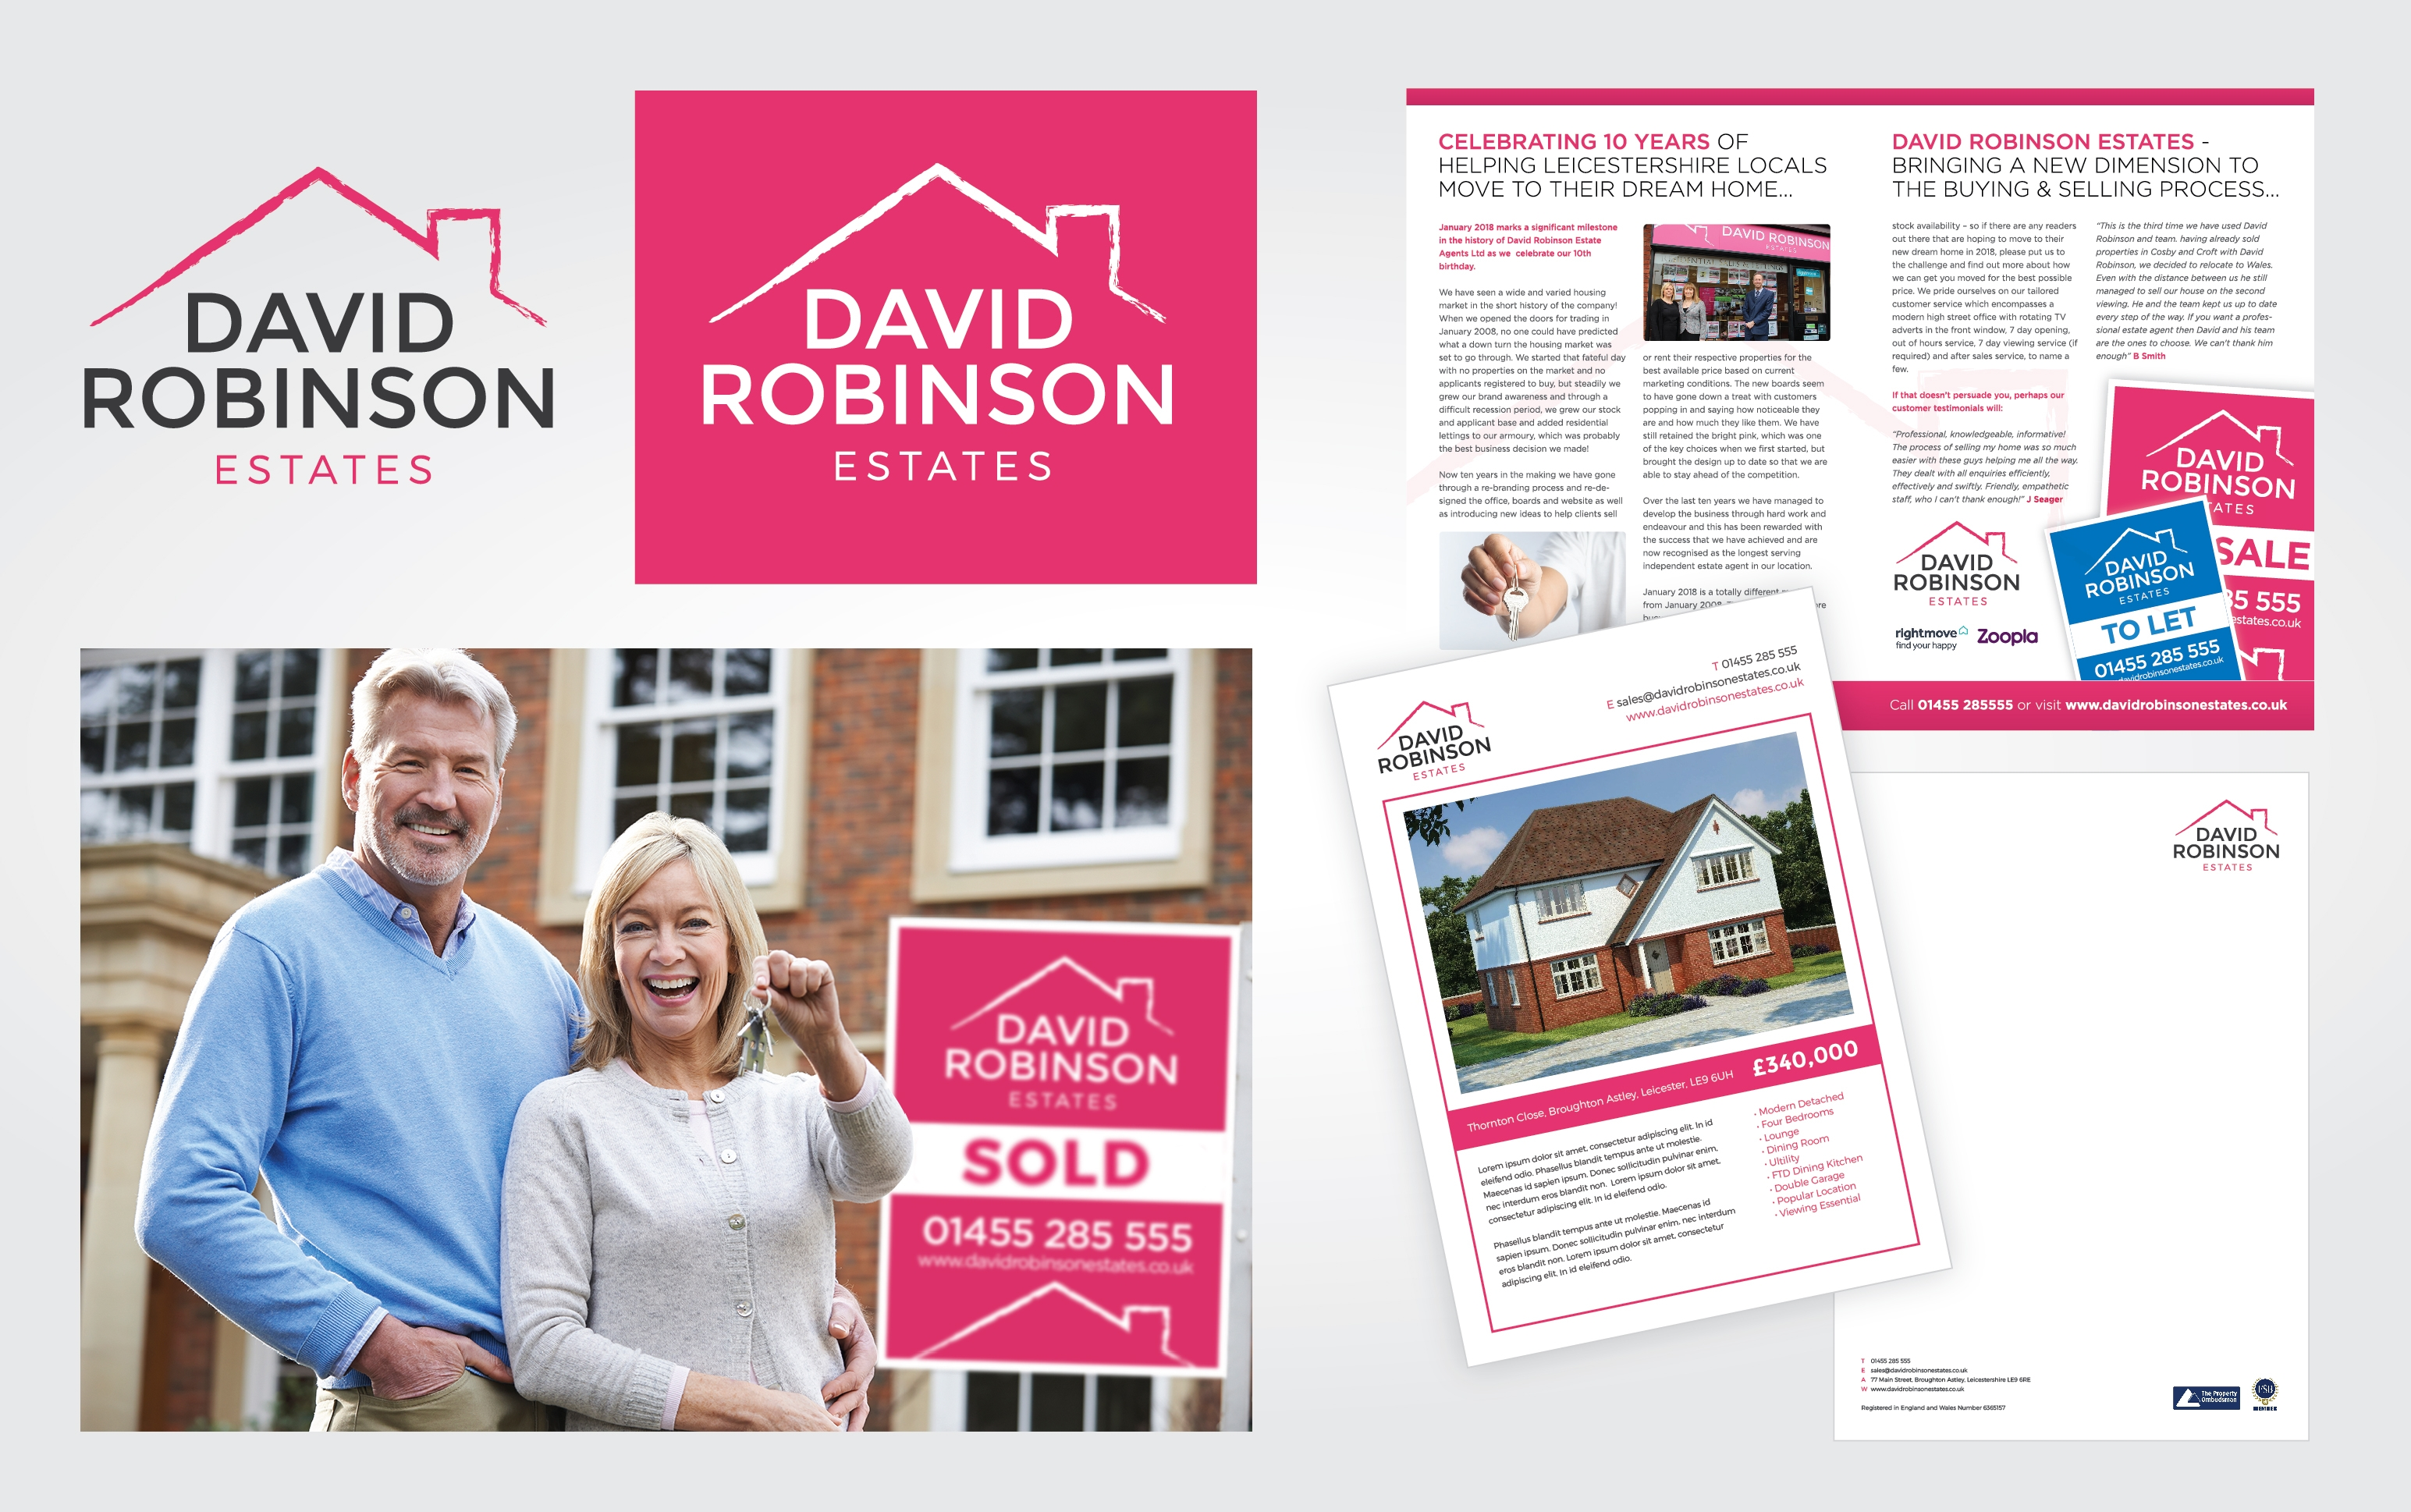 David Robinson Estates Re-brand